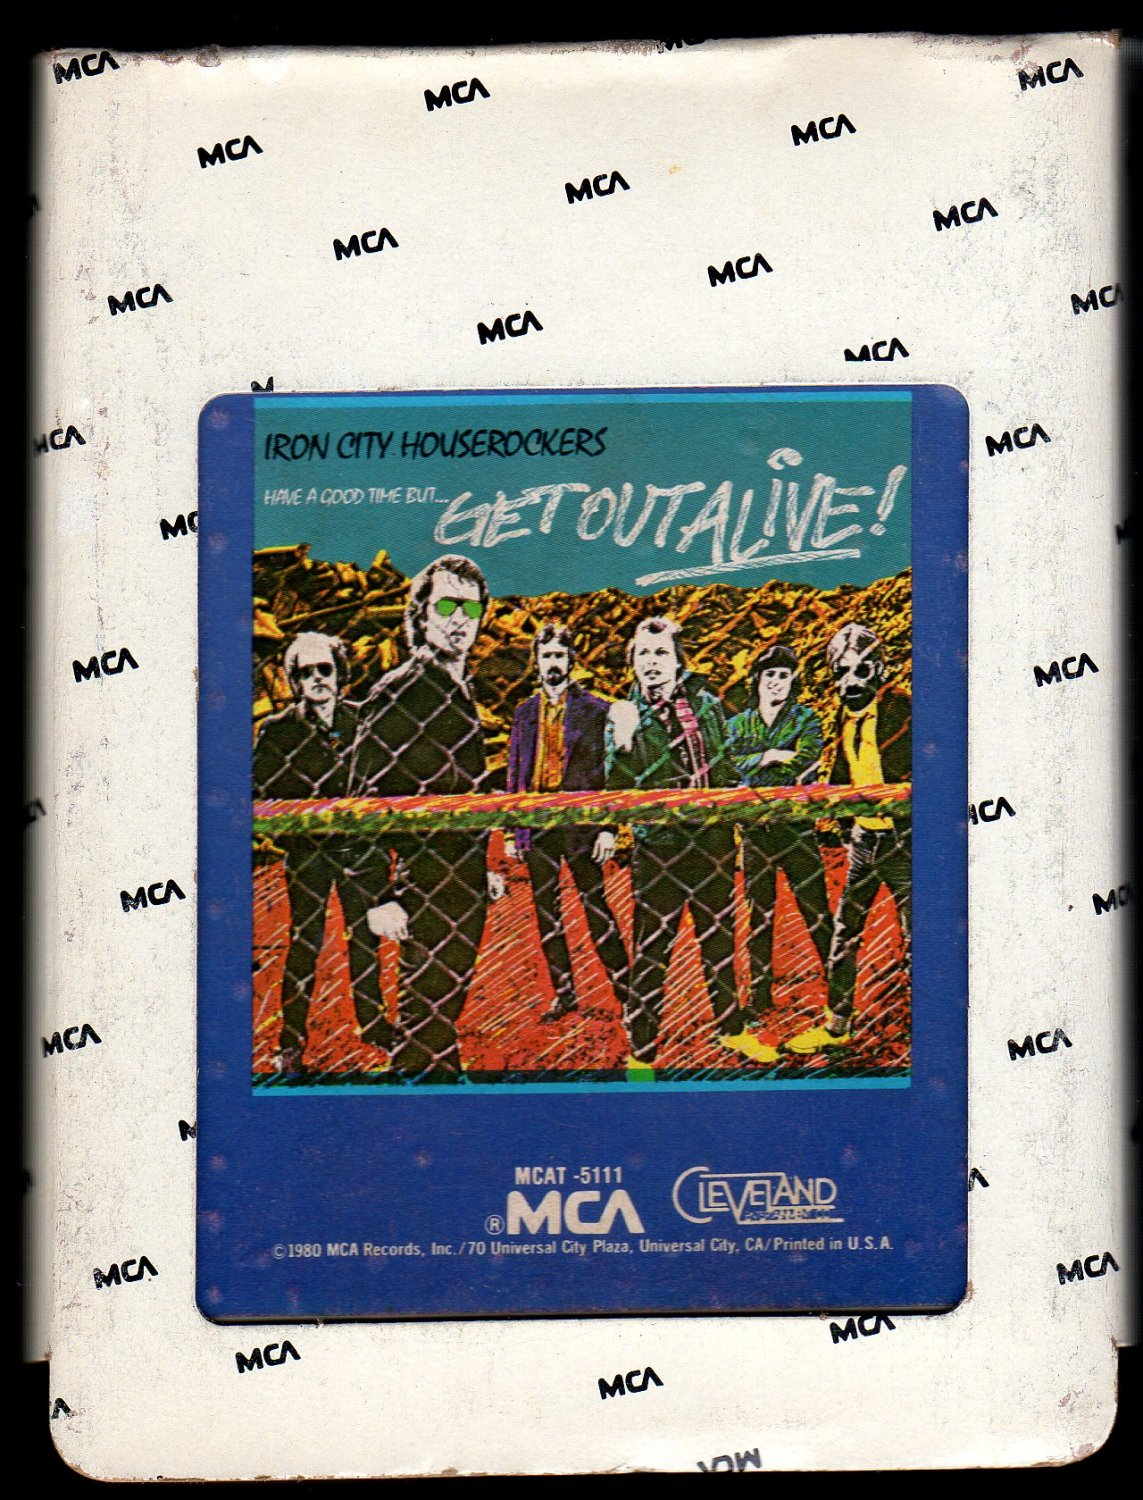 Iron City Houserockers - Have a Good Time but Get Out Alive! 1980 MCA A23 8-TRACK TAPE